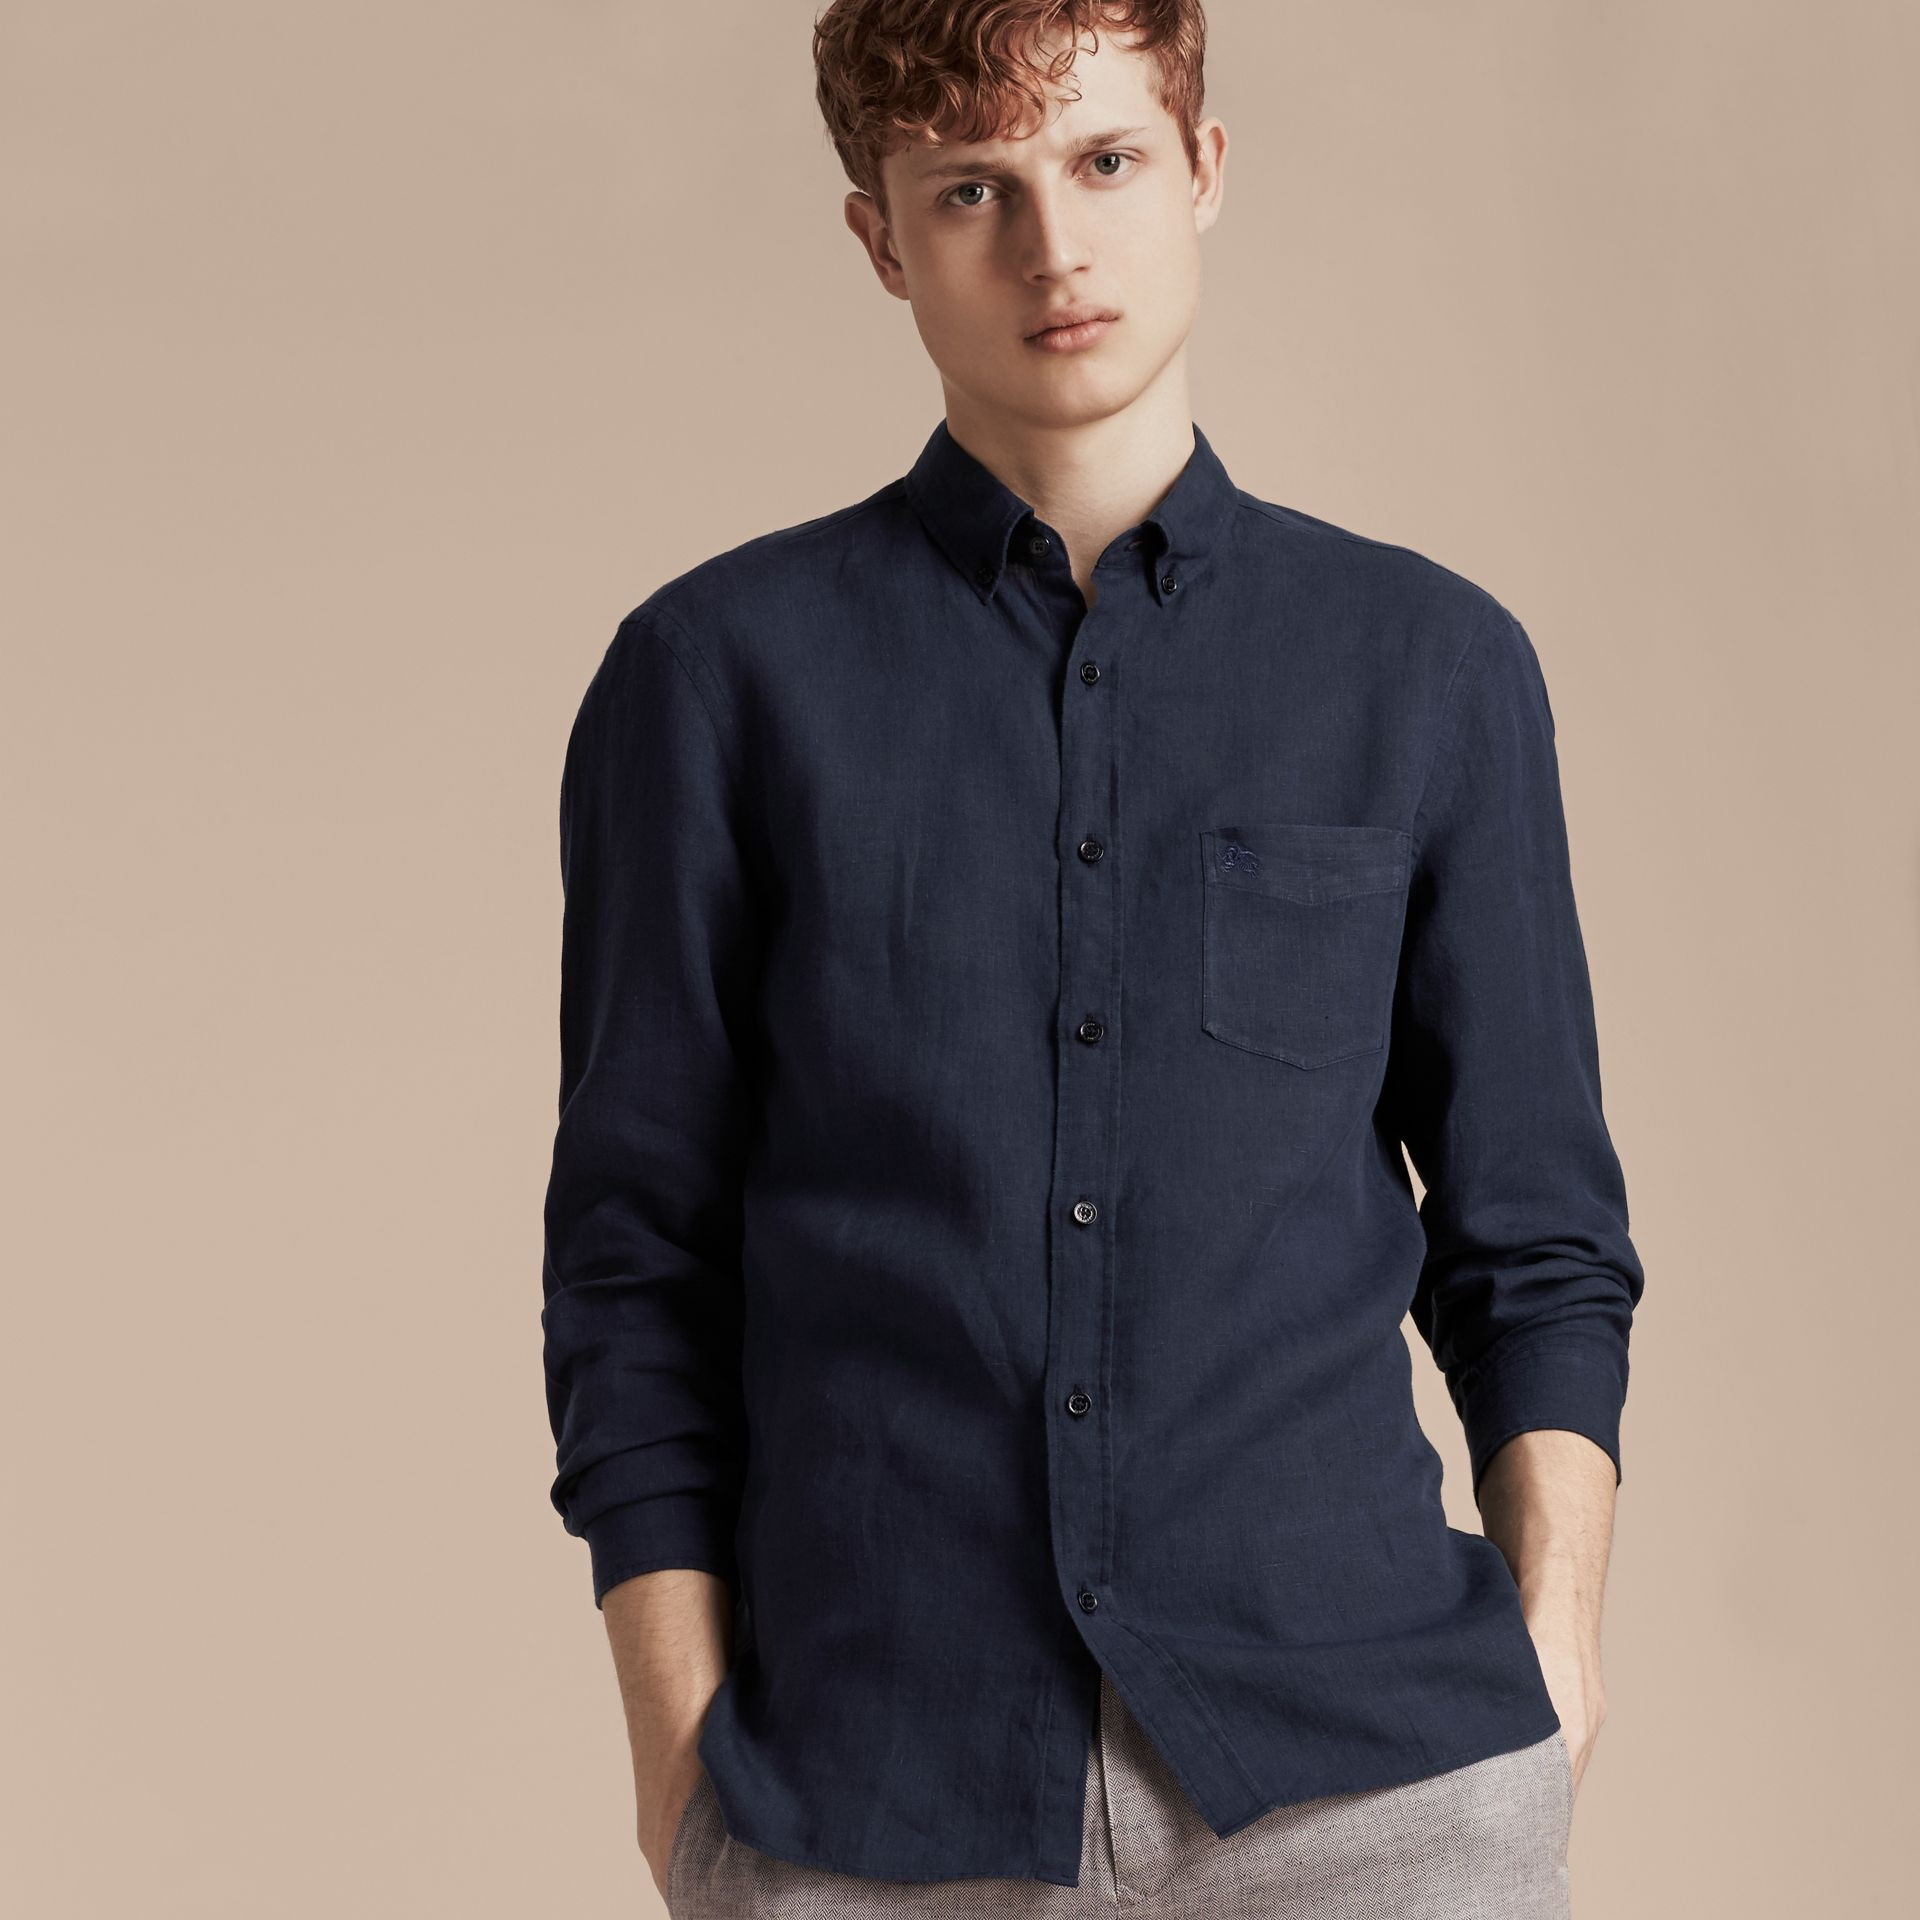 Navy Camicia in lino con colletto button-down Navy - immagine della galleria 5